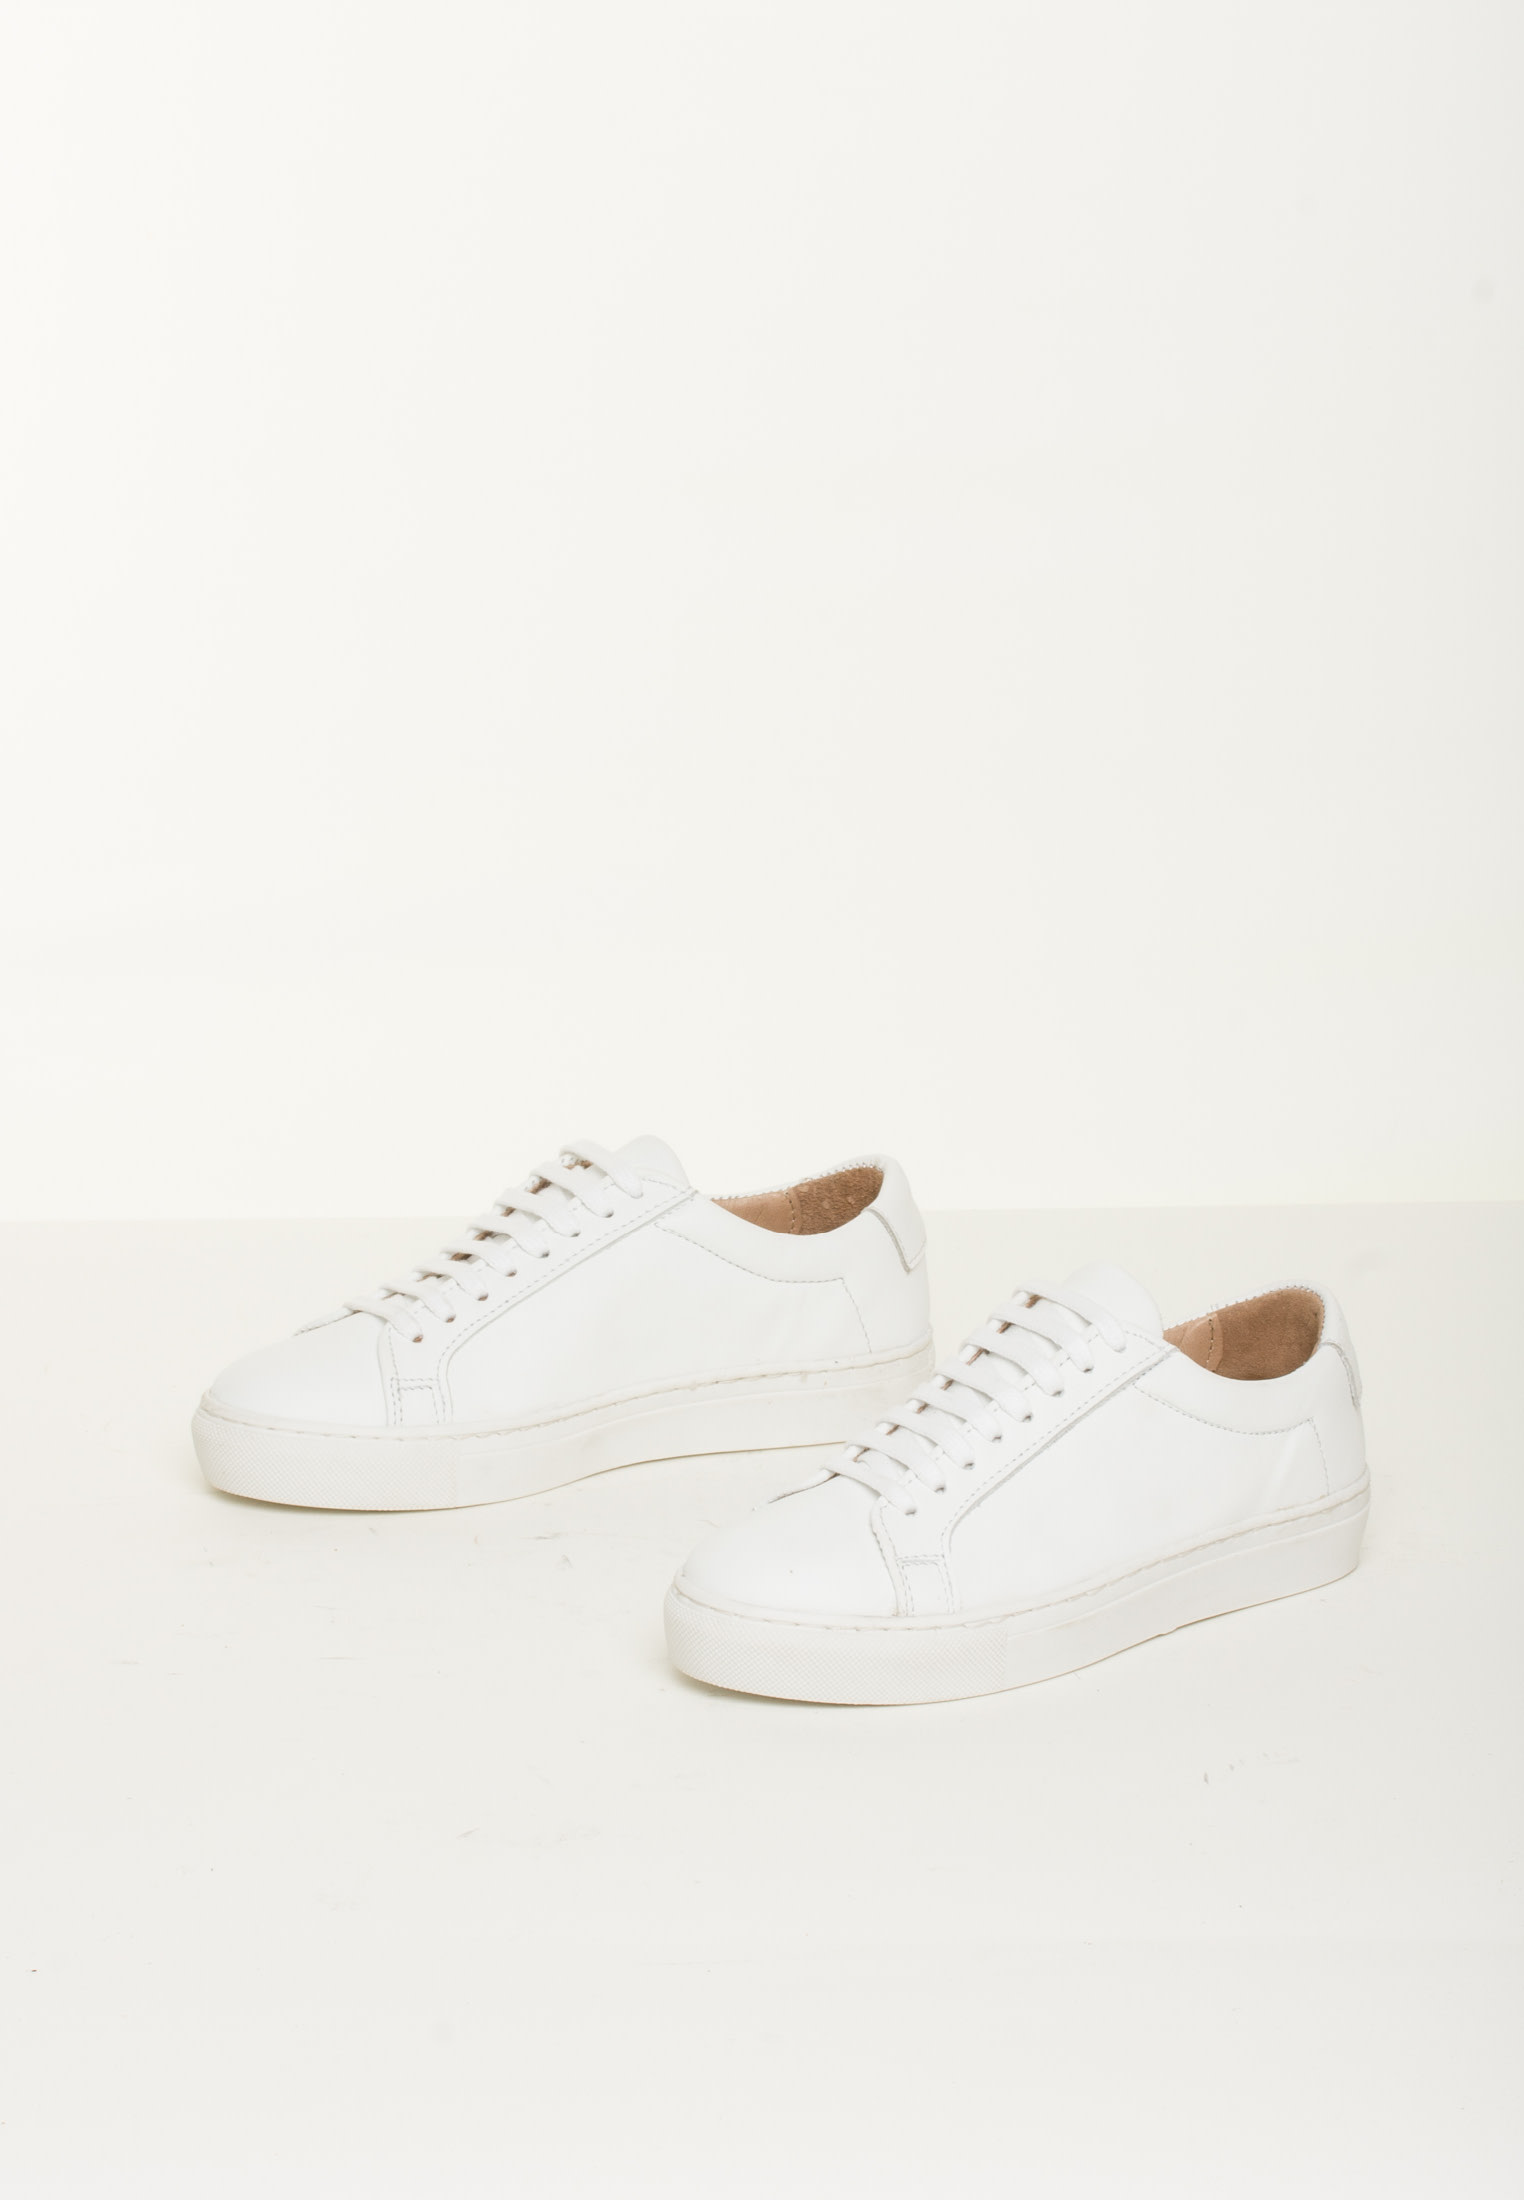 BLUEONBLUE Retro Sneakers White